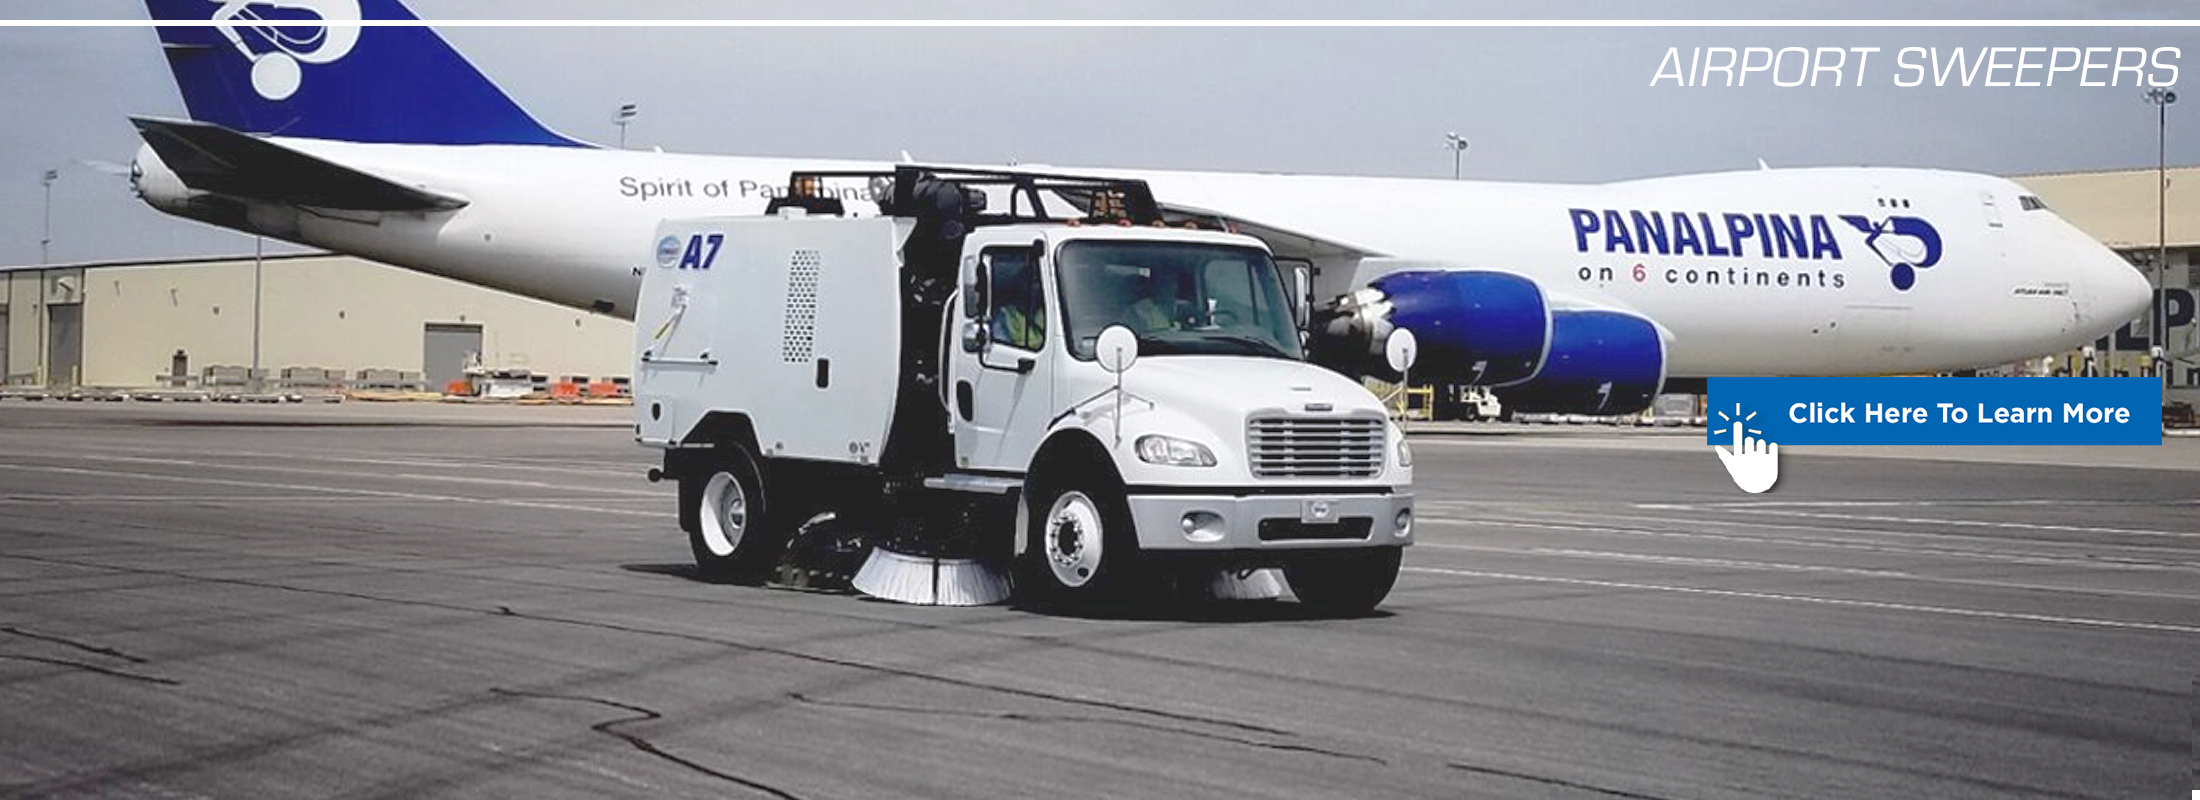 Airport Sweepers banner graphic